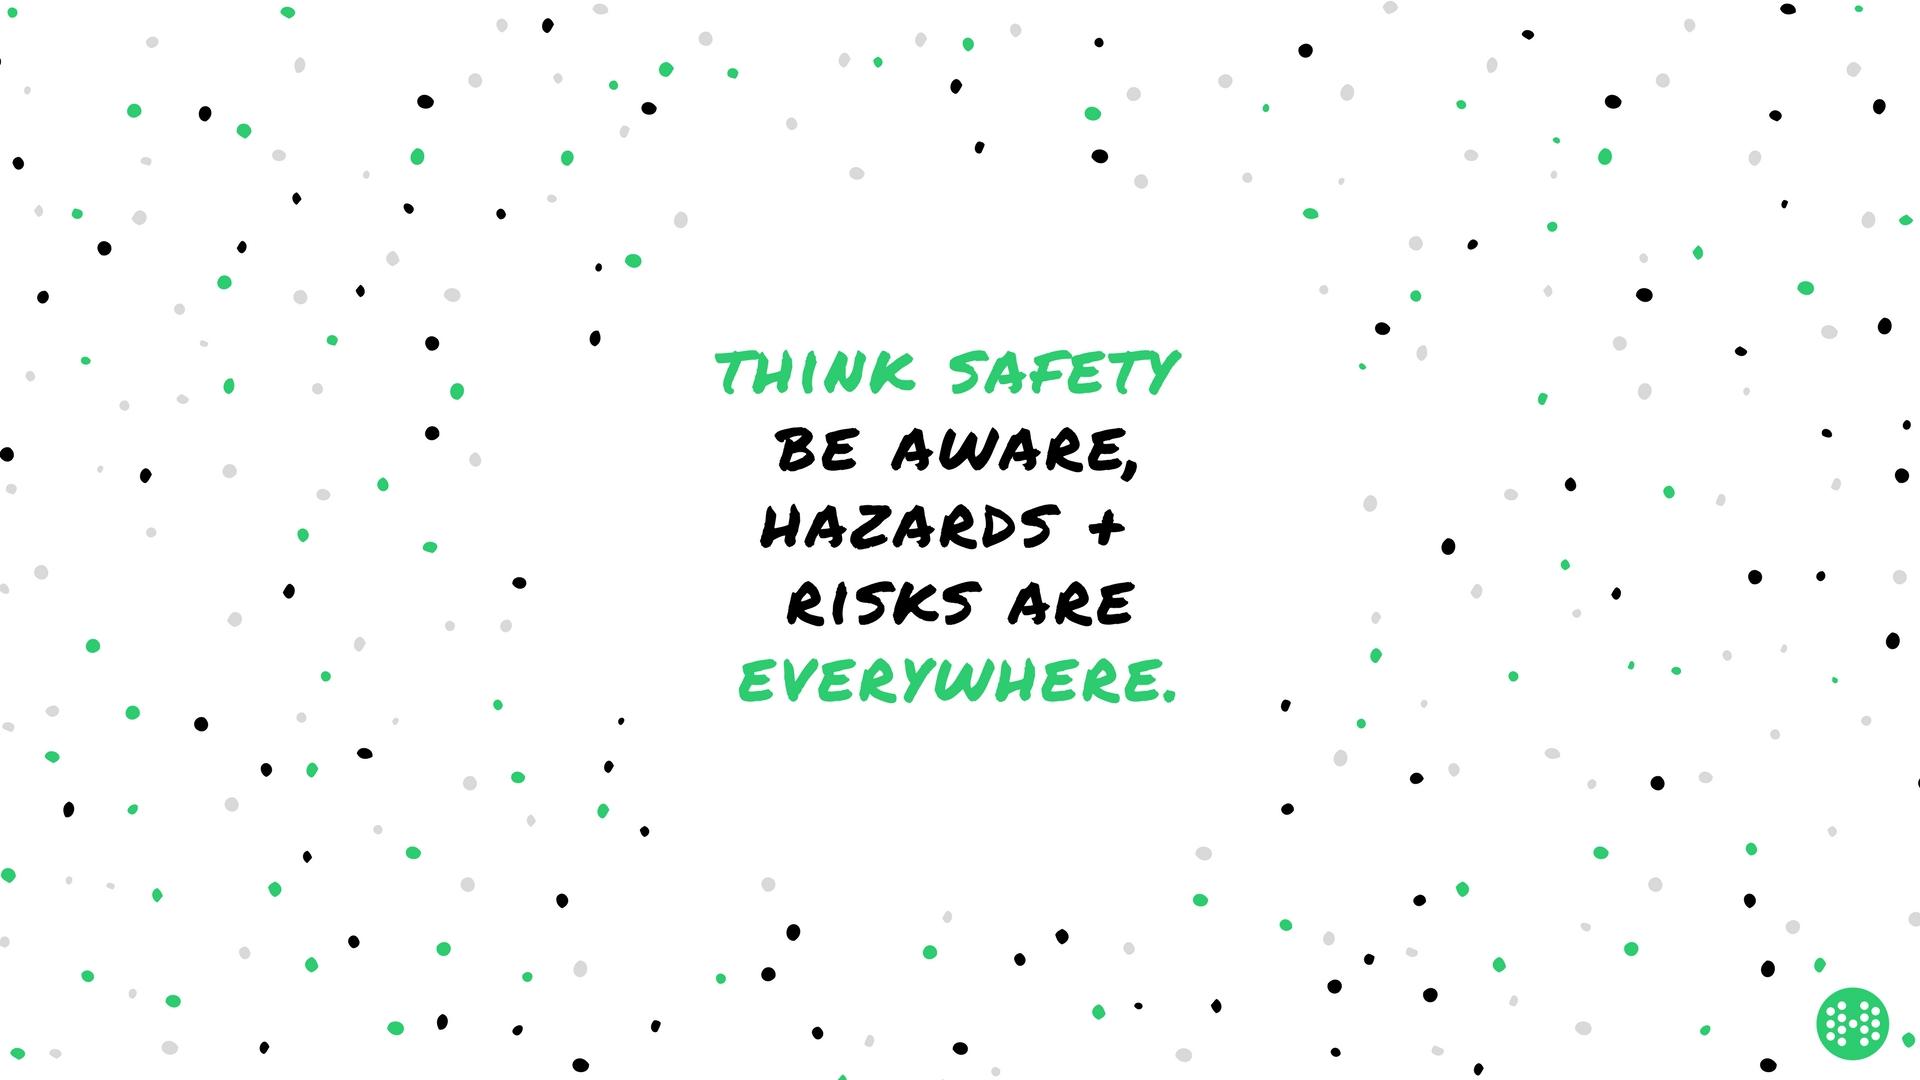 think safety wallpaper